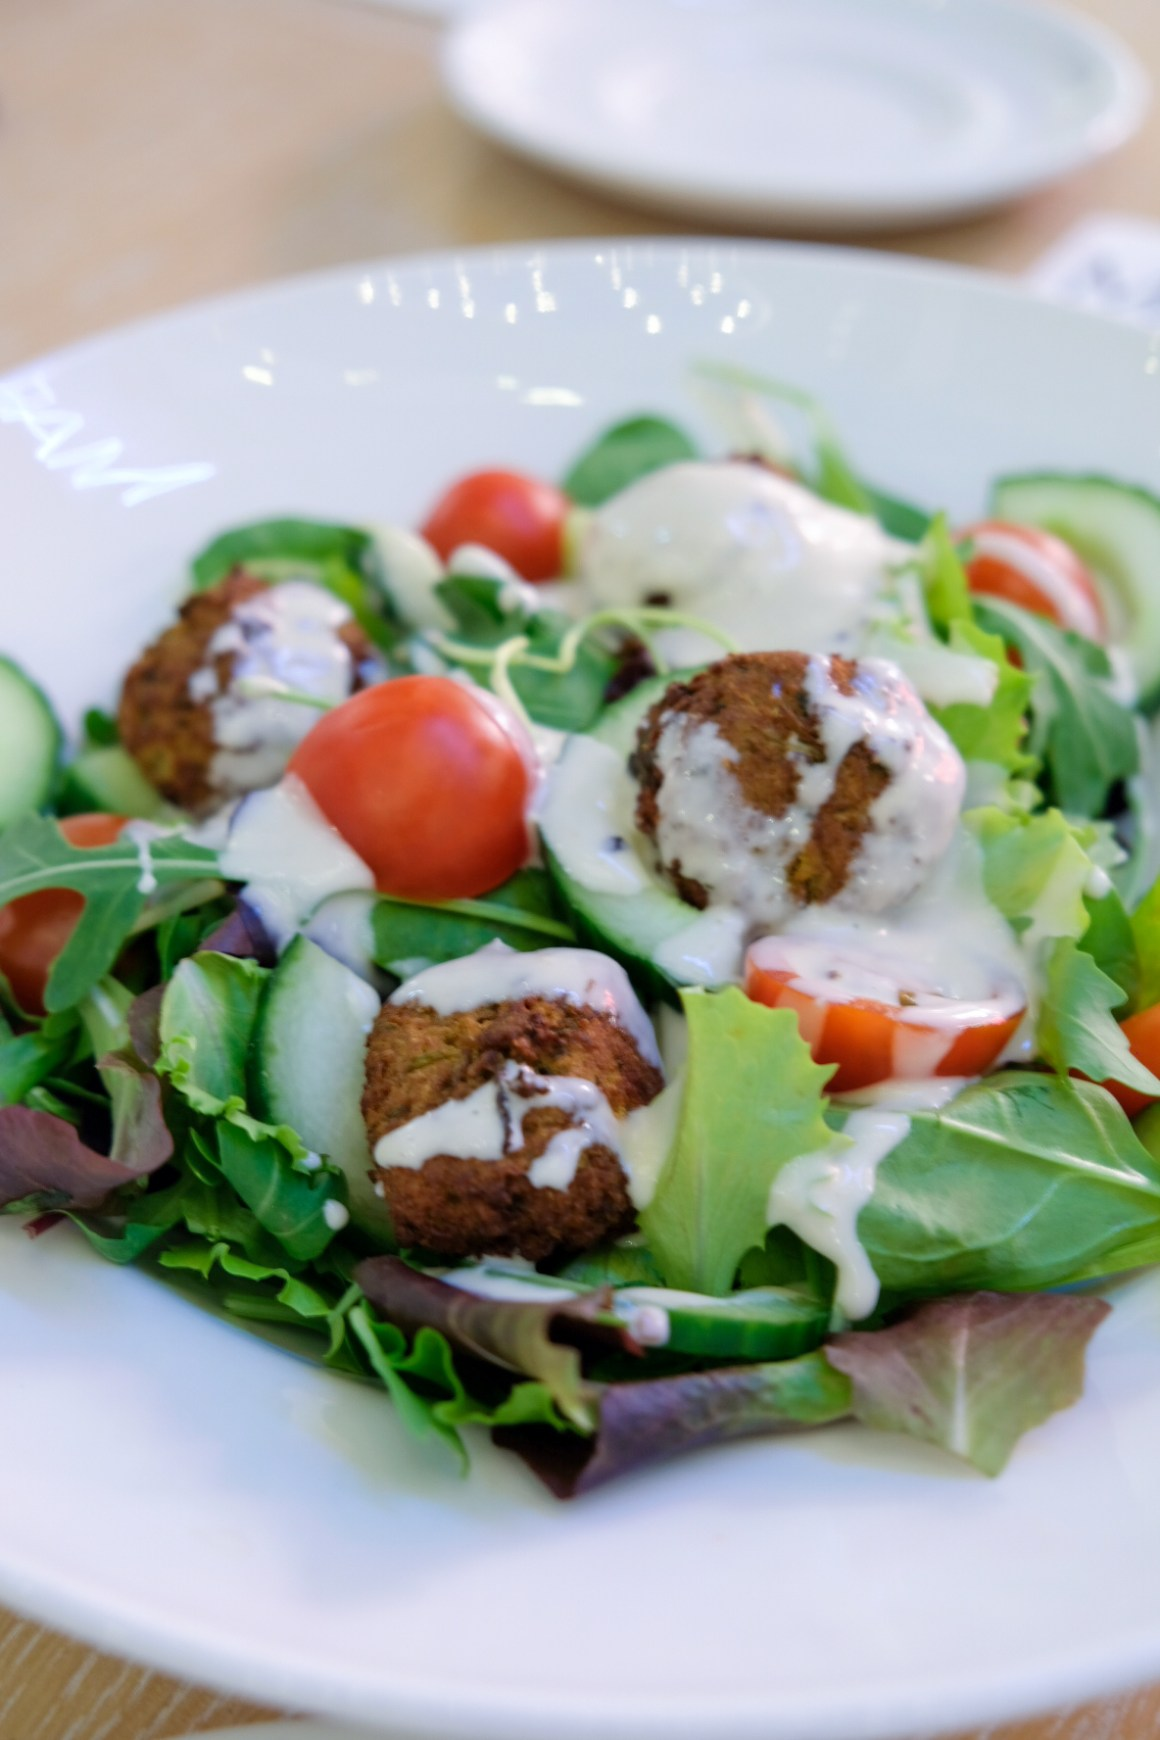 M&S Cafe New Menu Items - Sweet Potato Falafel Salad ($15)